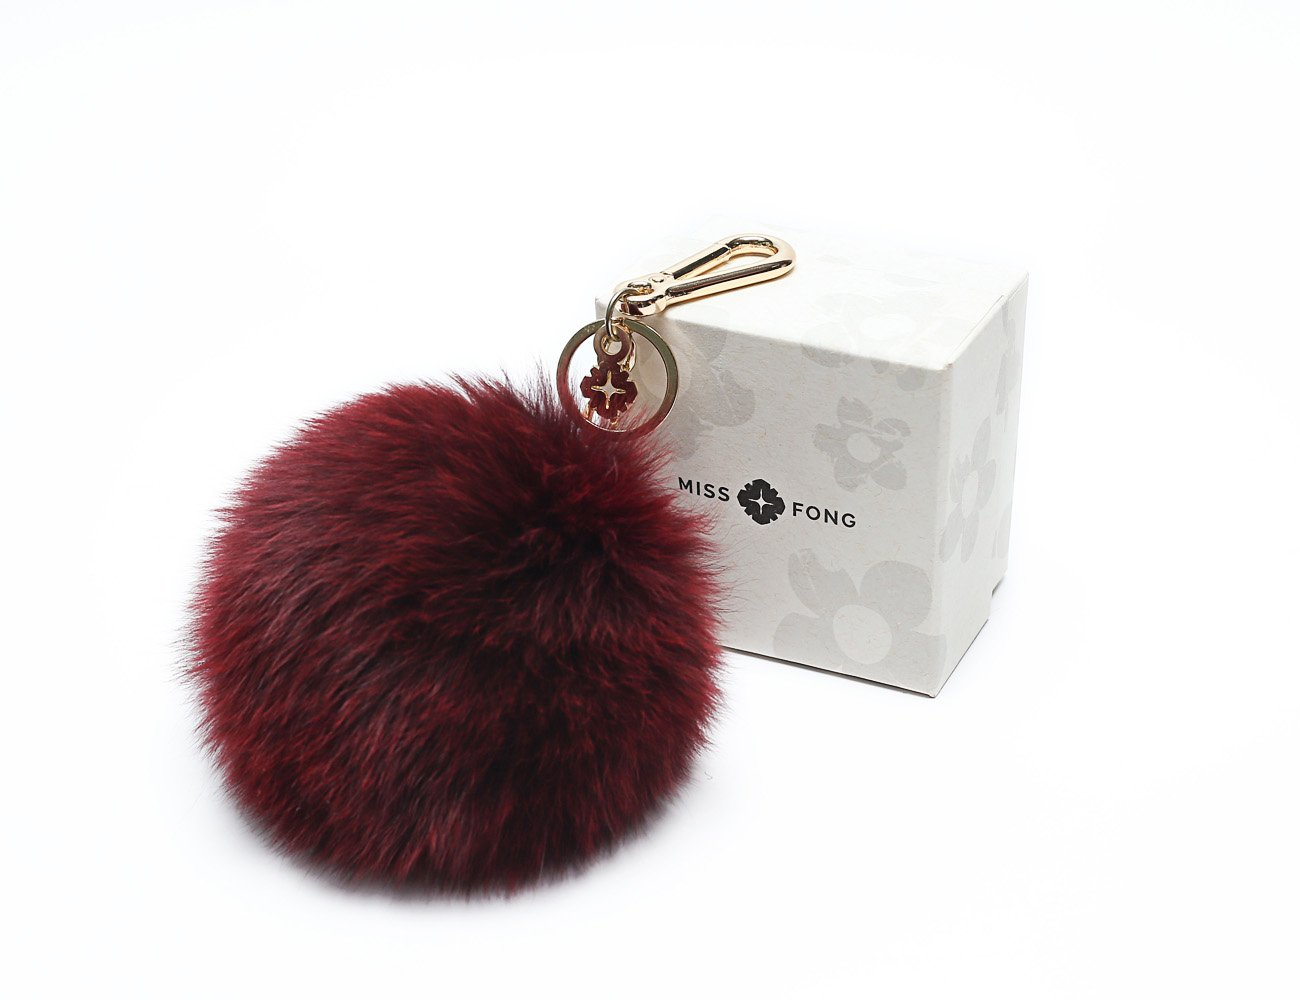 Pompom Keychain by Miss Fong, Bag Charm Fur Ball Keychain Car Key Ring Handbag Keychain(Grey) FA180706-2